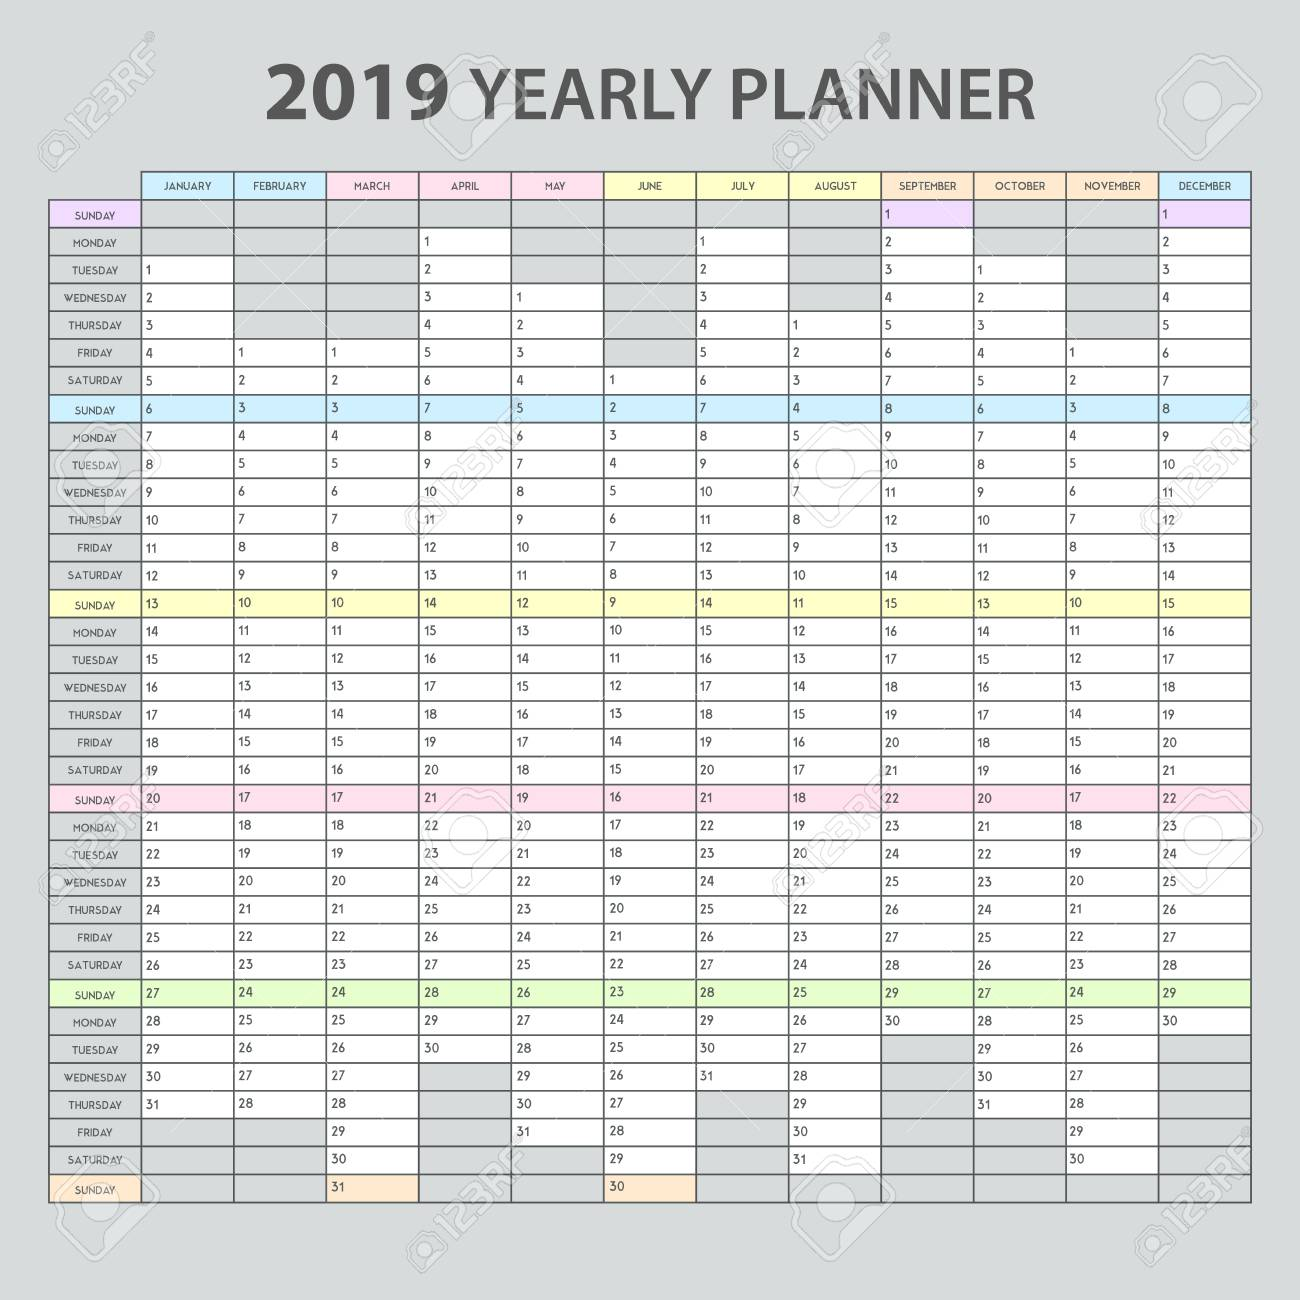 photo about Yearly Planner Template called Annually planner 2019 sensible printable template for business office appointments..